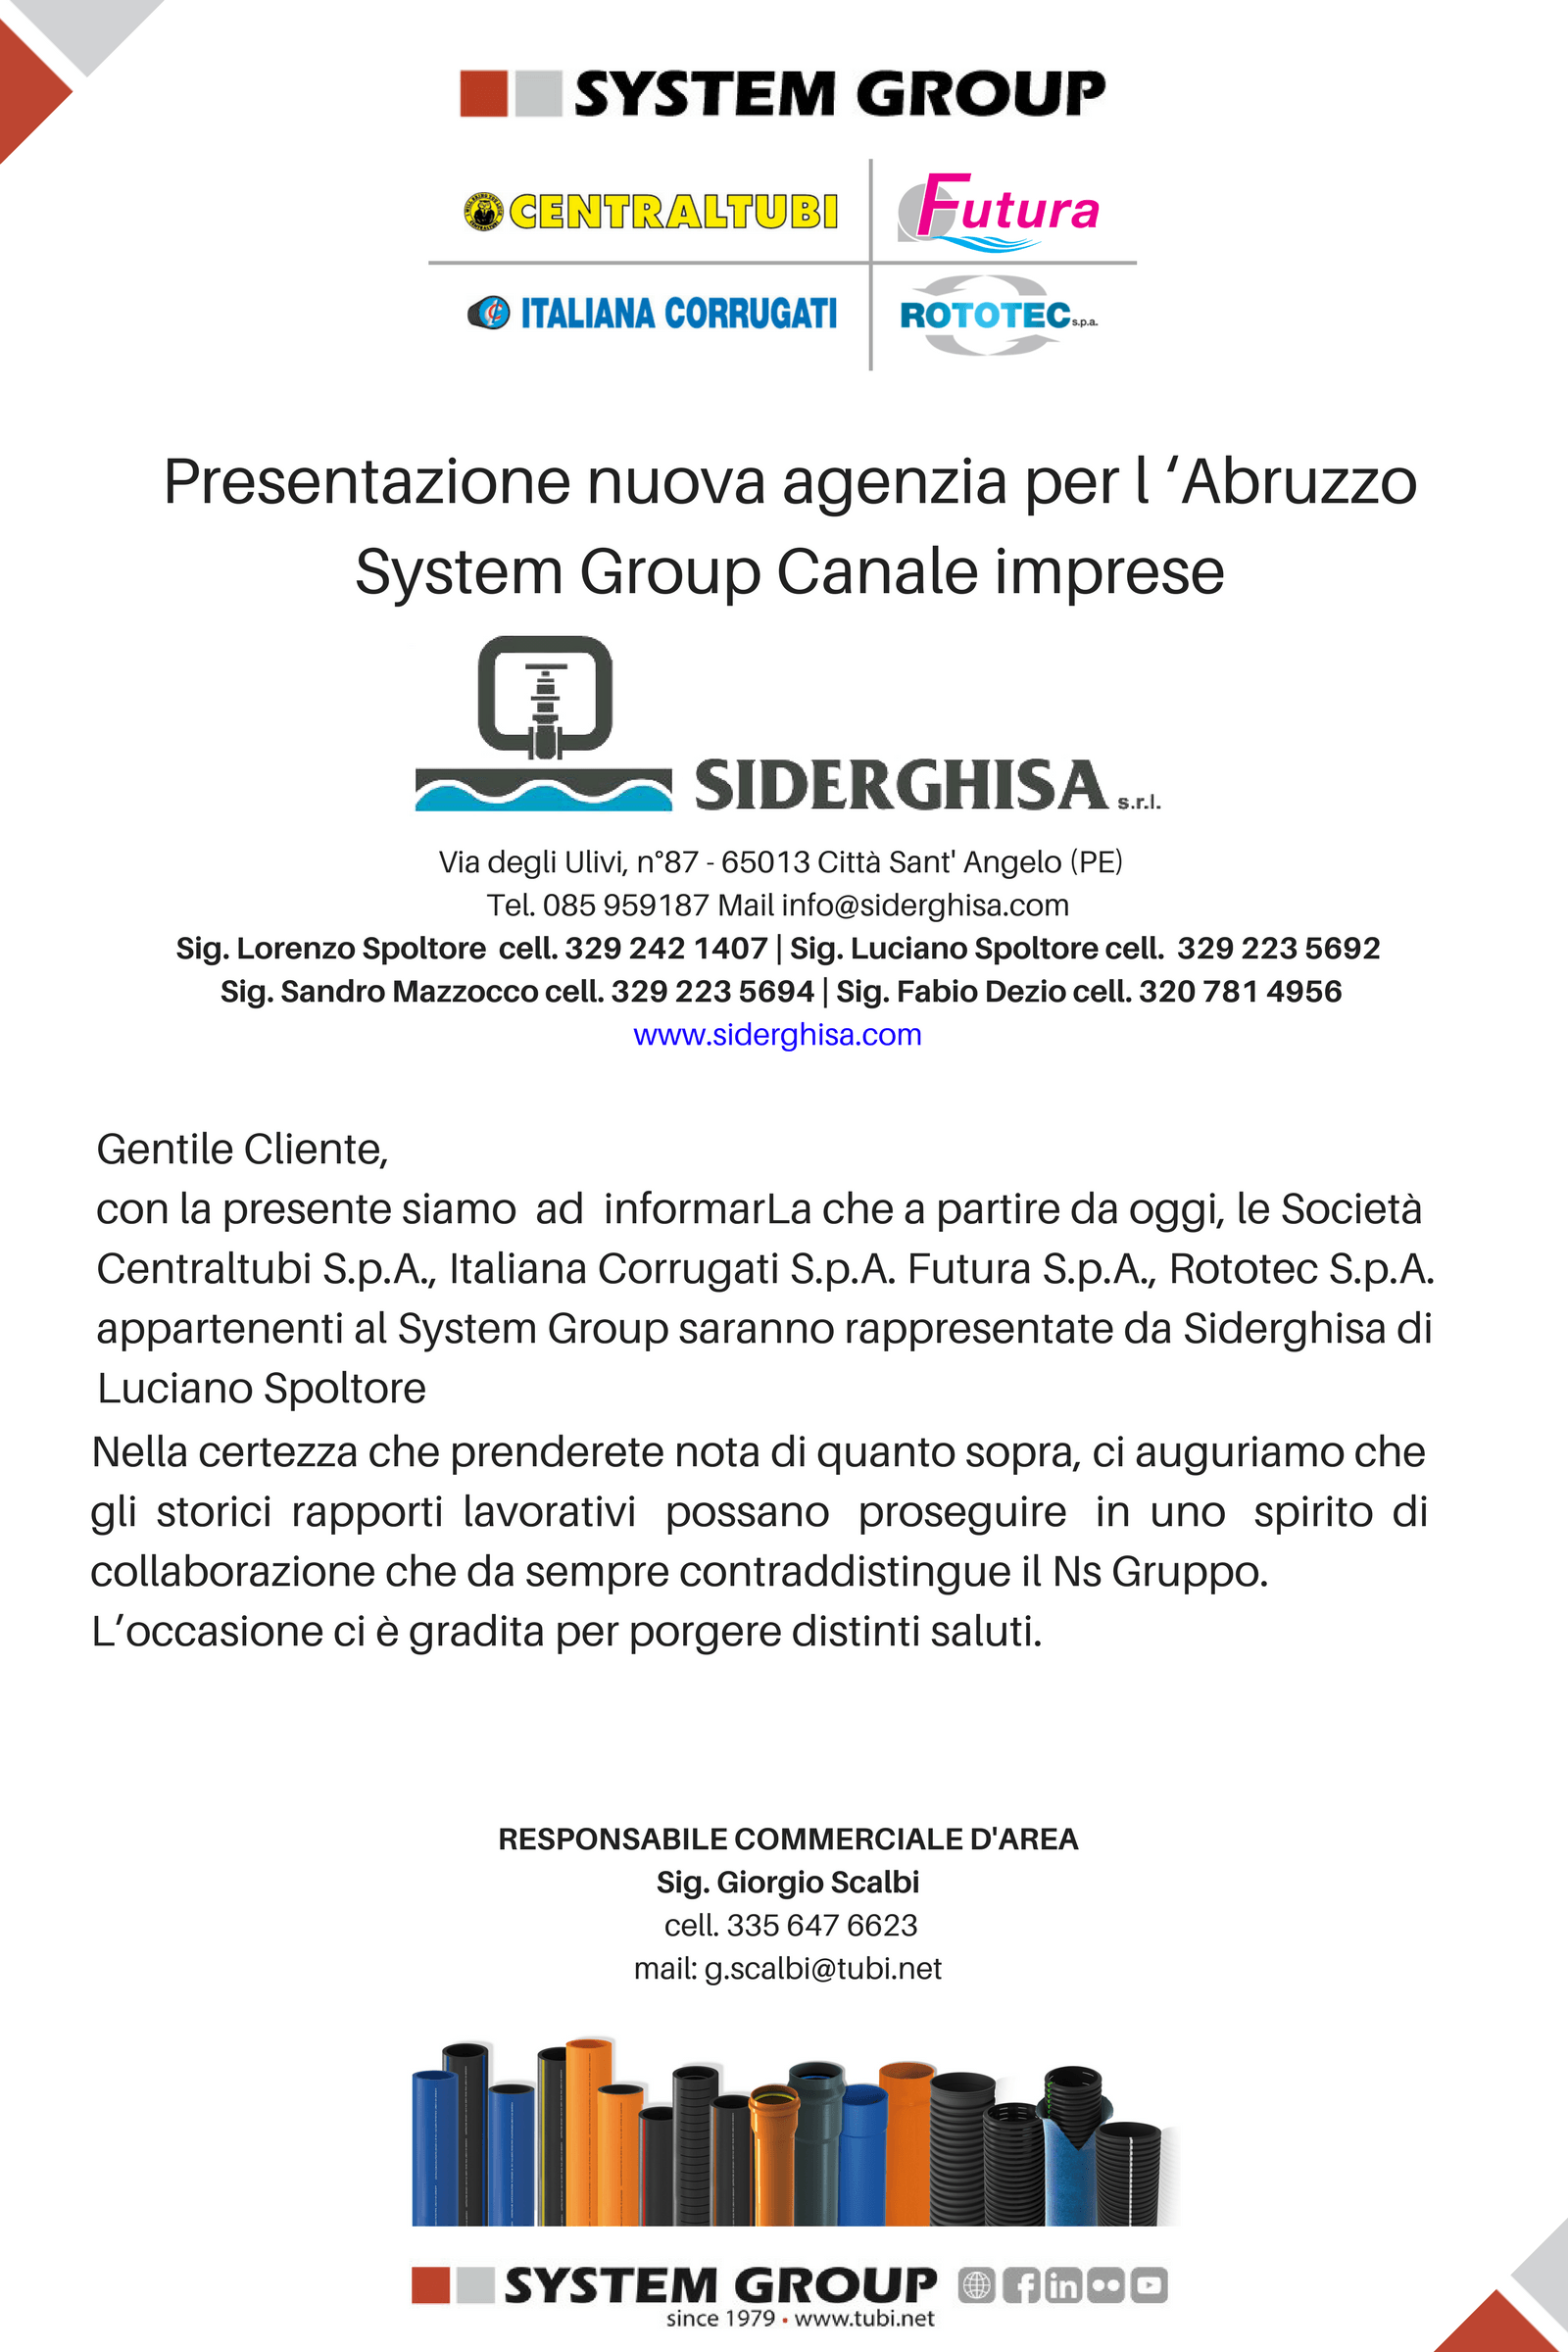 Systemgroup Presentation new agency for Abruzzo